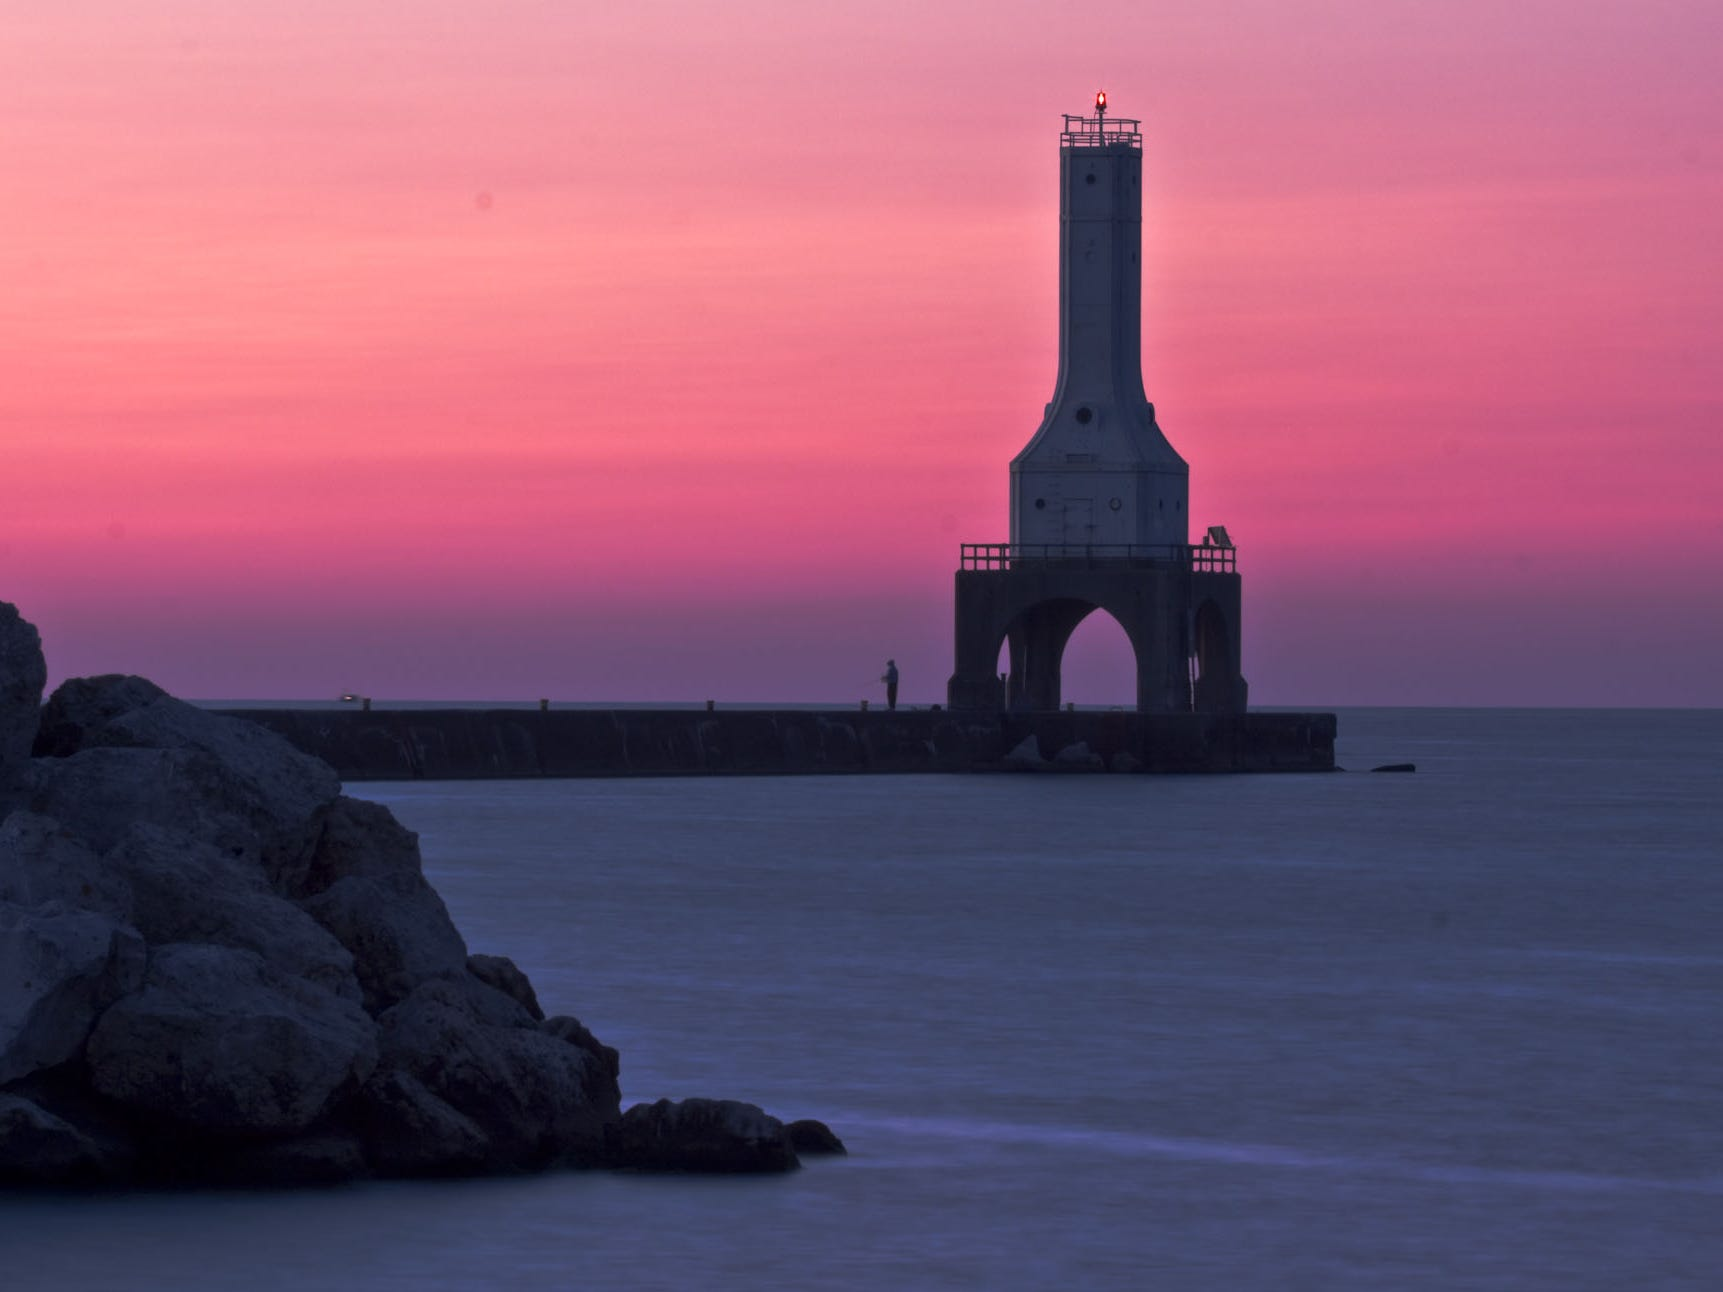 Pier and lighthouse at dawn. Another treat for lighthouse fans is the art deco lighthouse at the end of the town pier. Built in 1935, it is one of only two lighthouses of this design. Photo from Port Washington Tourism Council